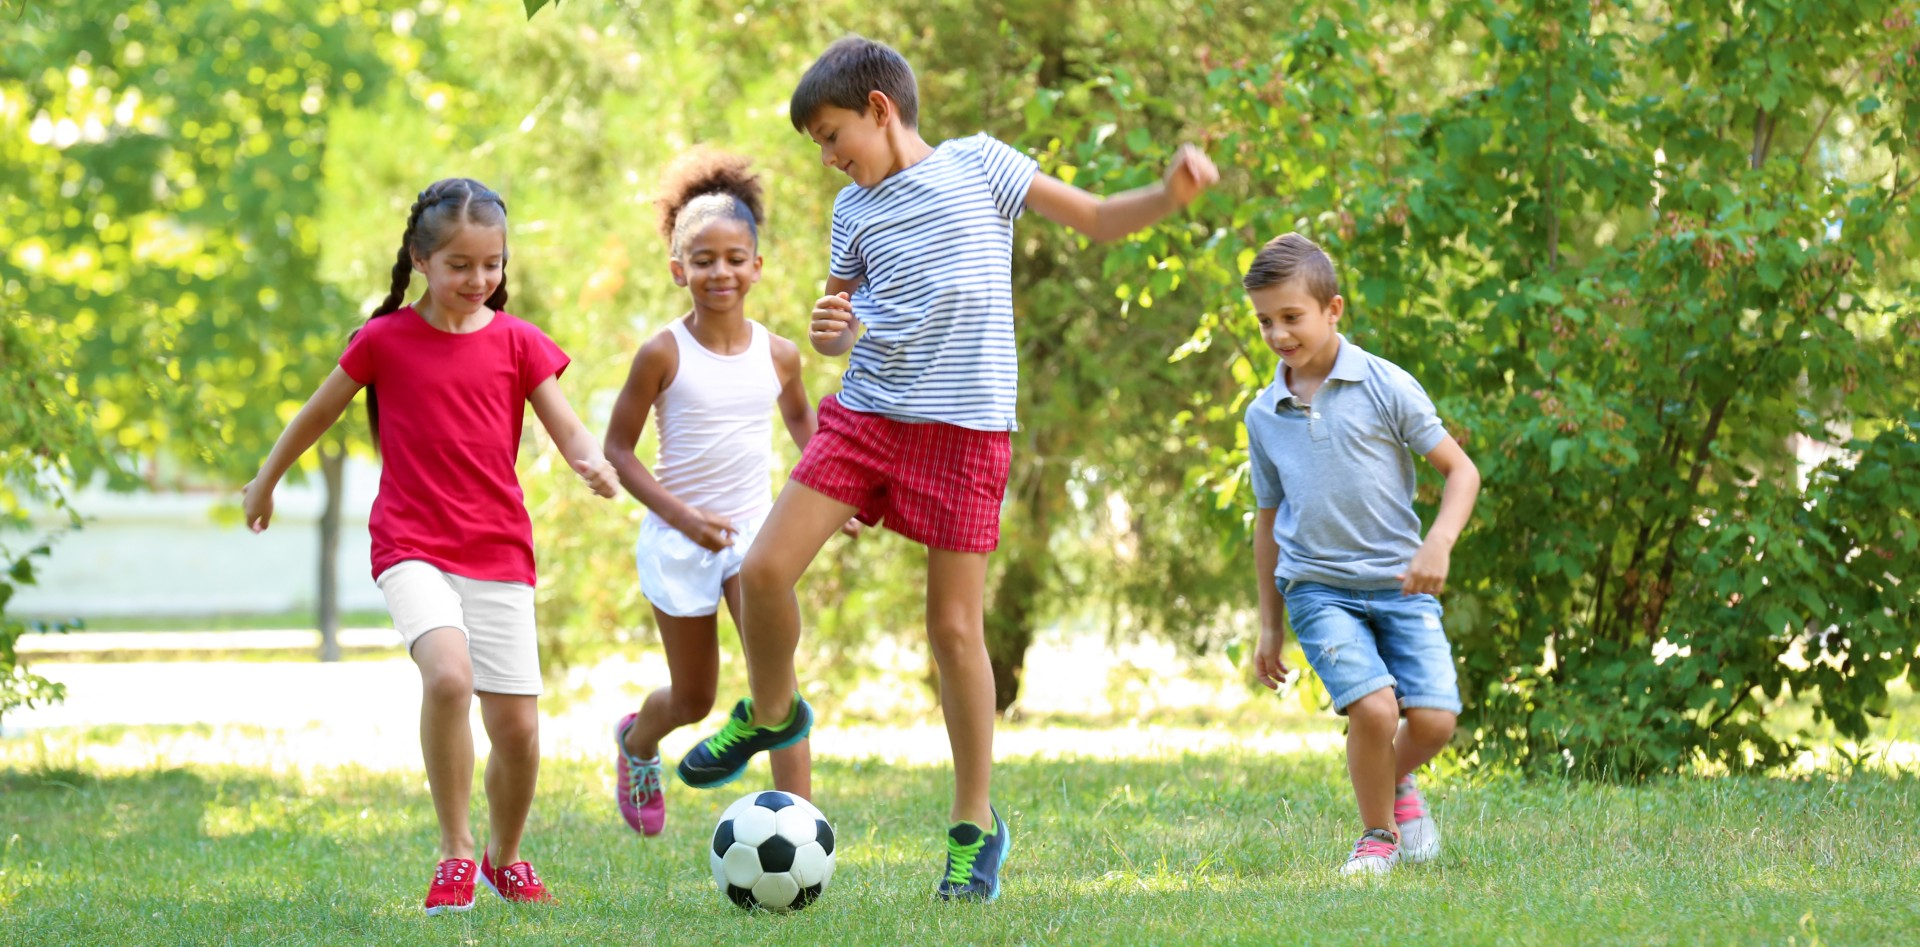 chidren playing football outside - shutterstock